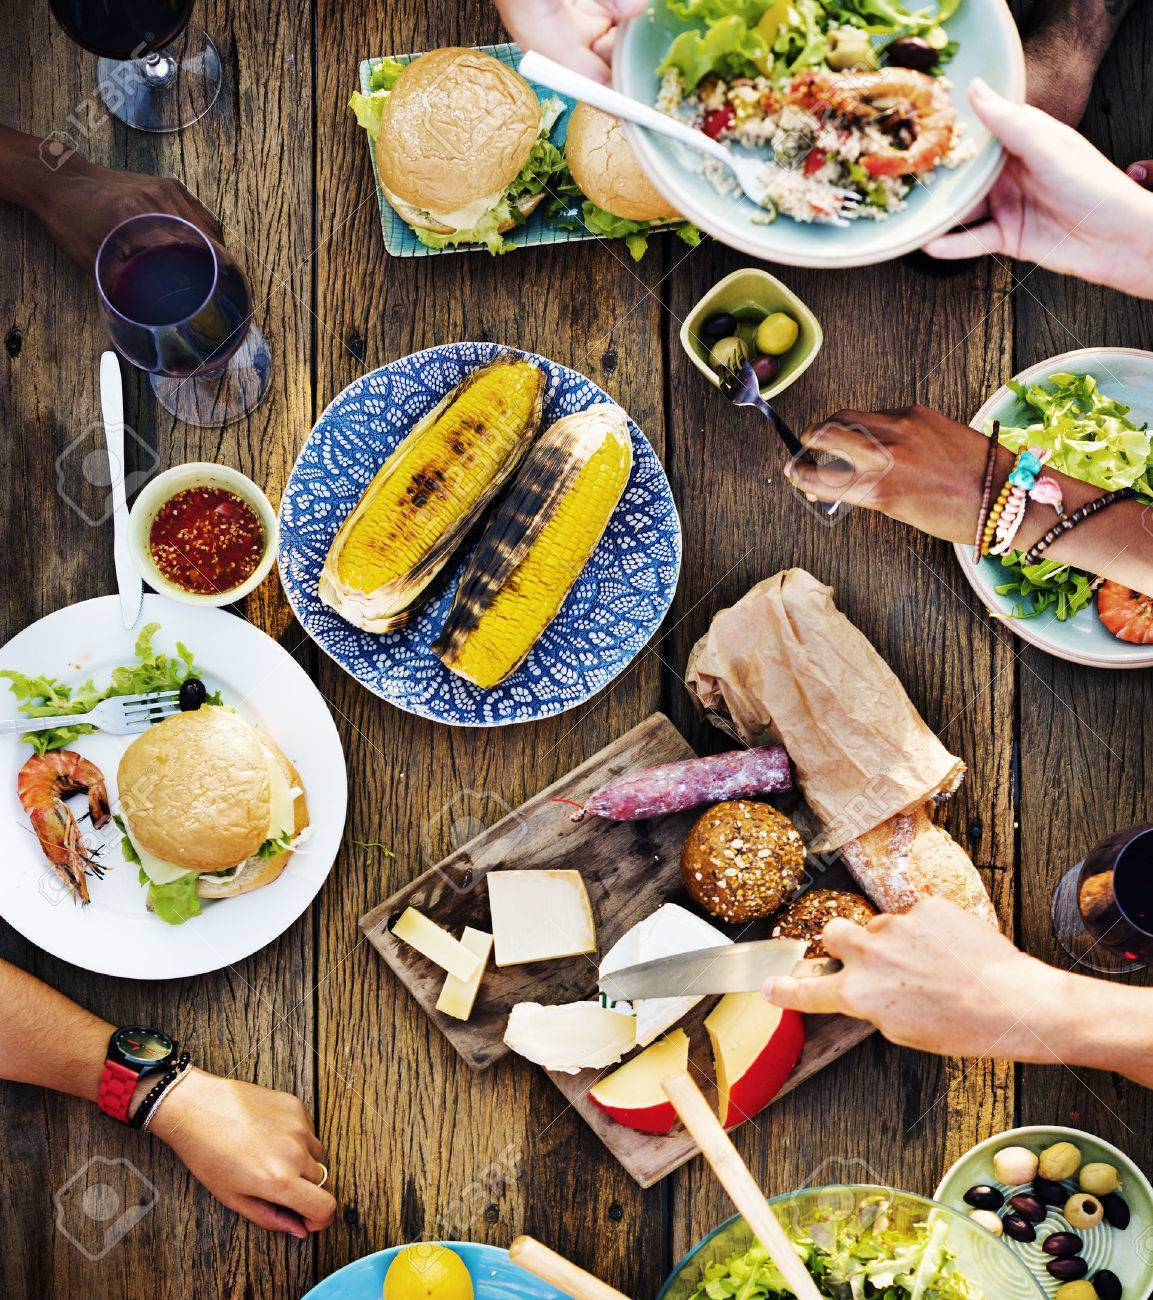 Dinner table with food - Food Table Delicious Meal Prepare Cuisine Concept Stock Photo 44741644